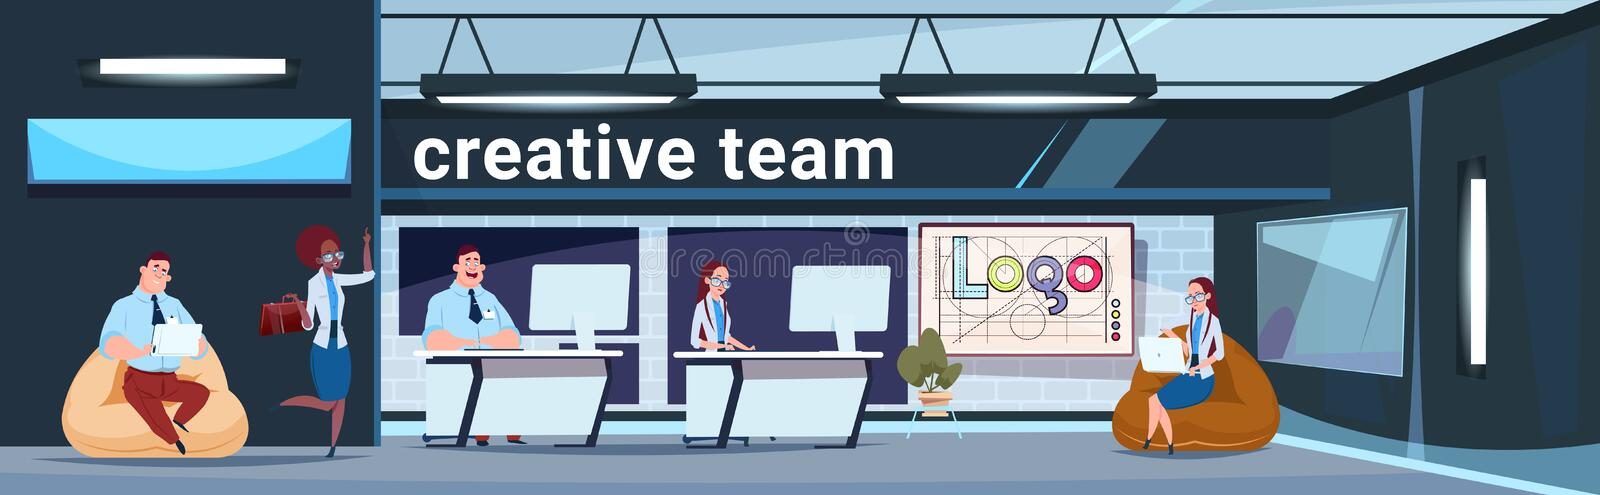 Creative Team Working In Modern Office Coworking Space Business People Group Brainstorming royalty free illustration